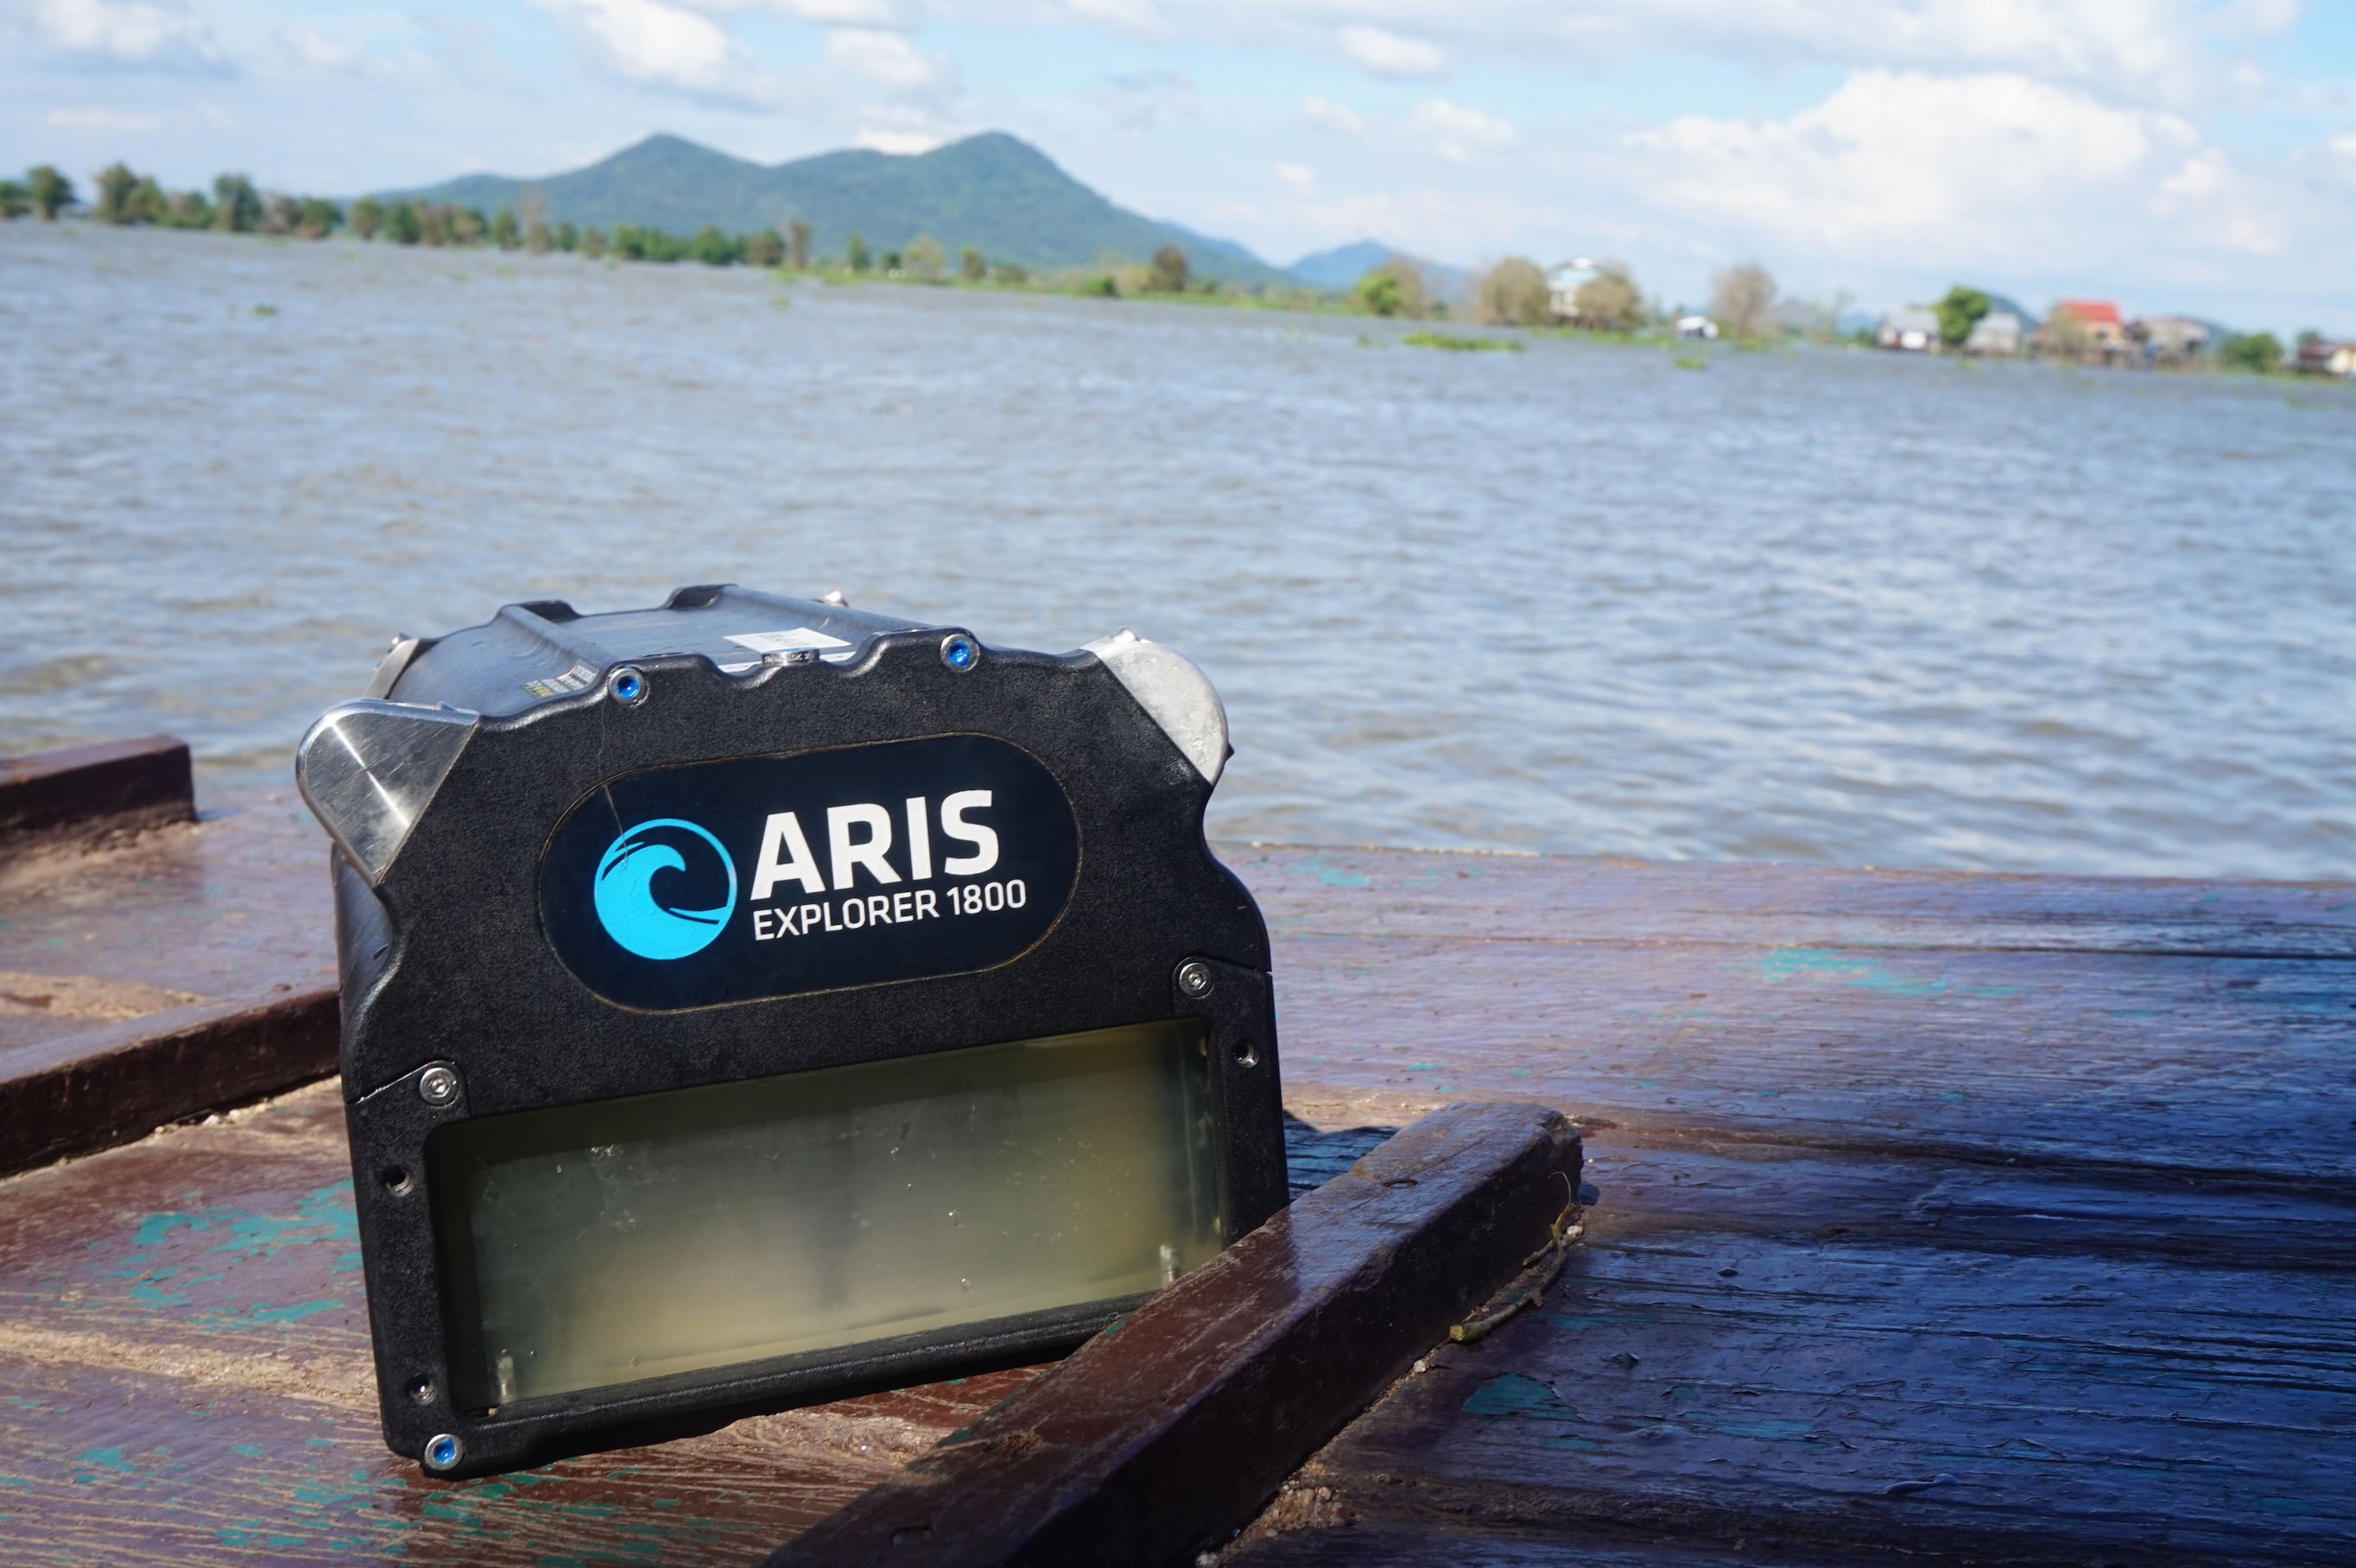 The ARIS camera at the Tonle Sap River